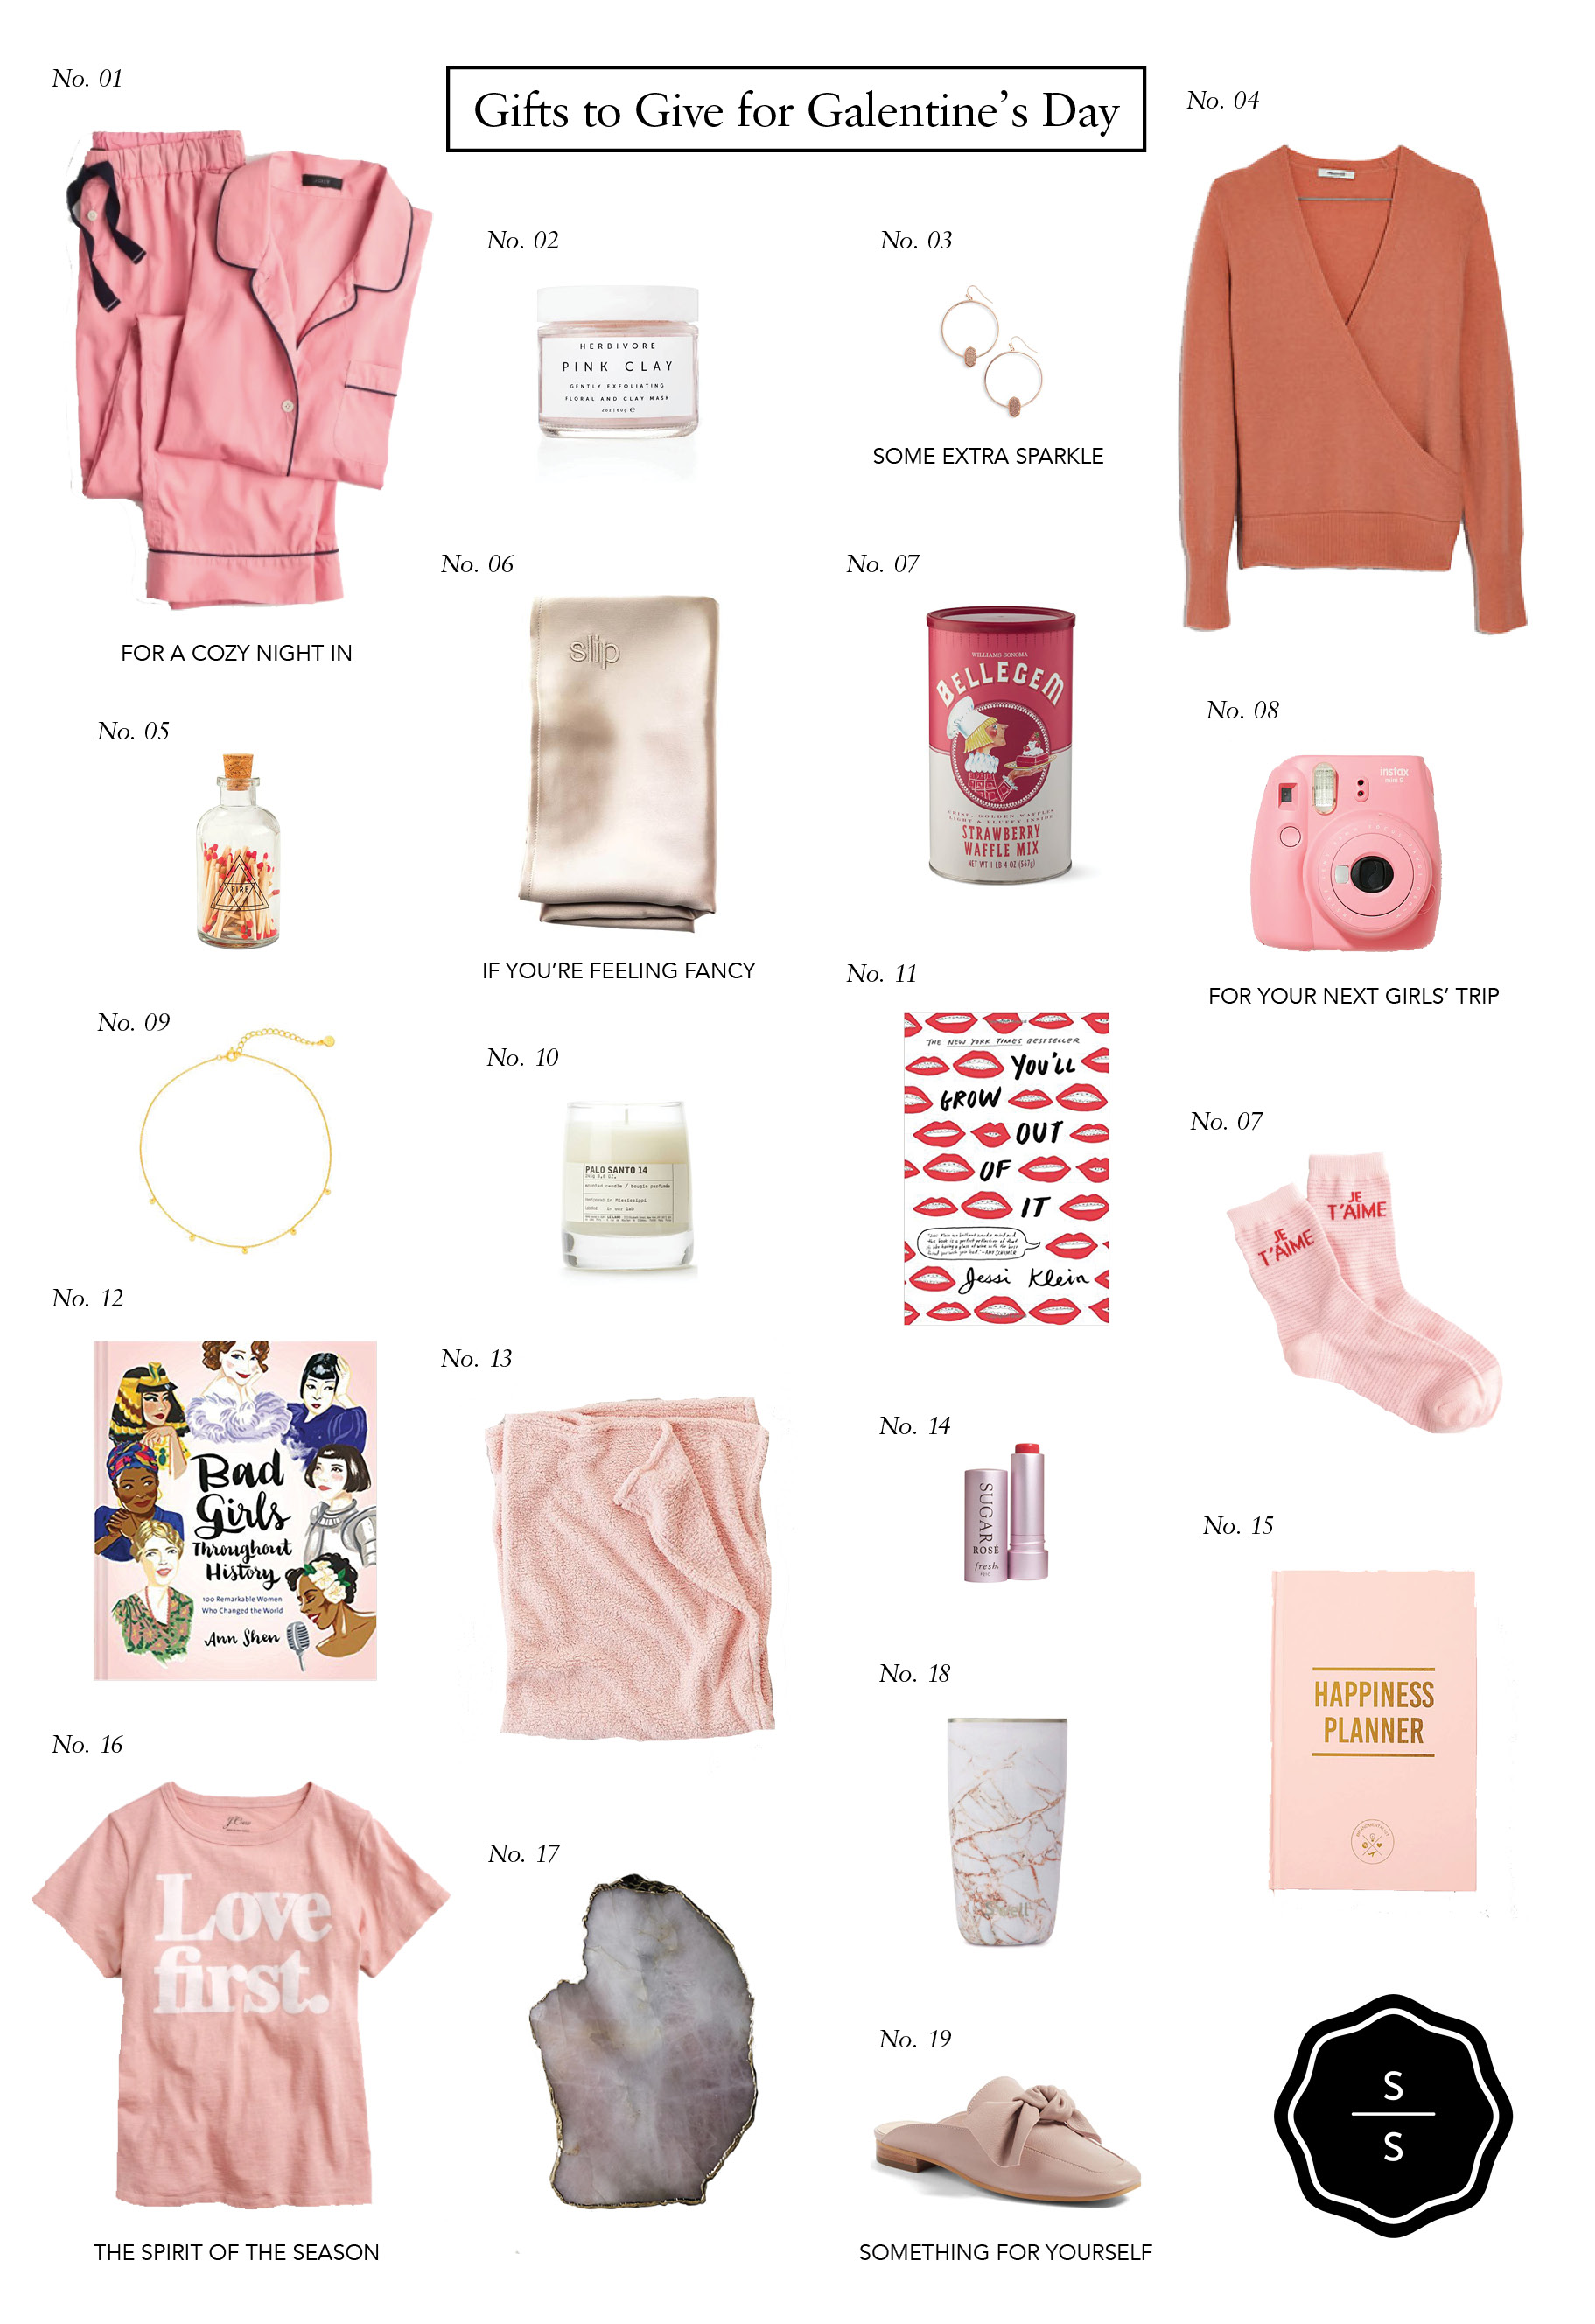 Liz Adams of Sequins & Stripes shares the best gifts to give for Galentine's Day under $100